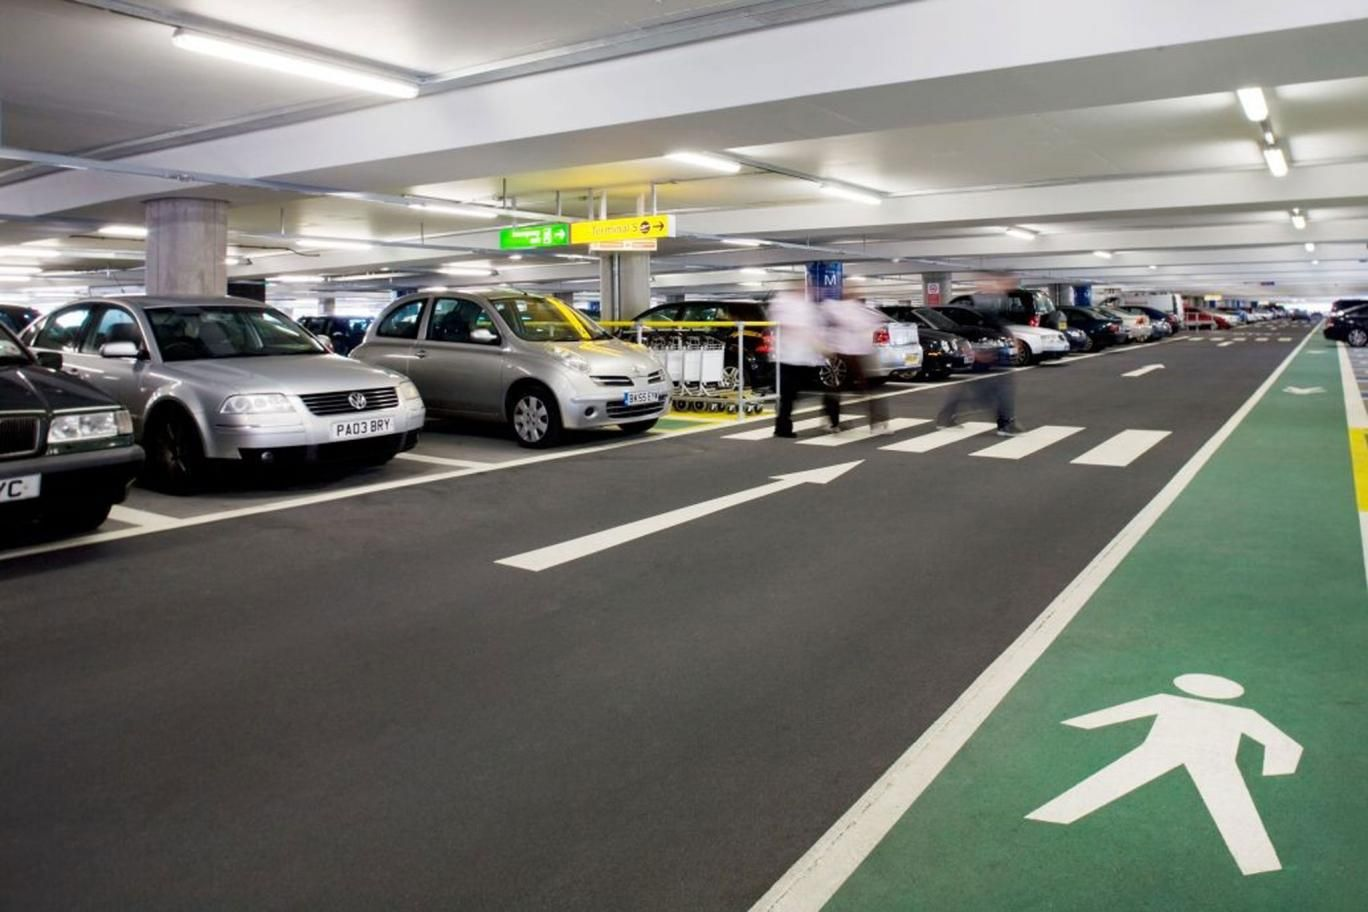 Park plus jfk airport parking airport parking pinterest park valet parking luton brings a luxurious car park for your car meet and greet luton deals would be helpful to secure your time and money at the airport kristyandbryce Gallery